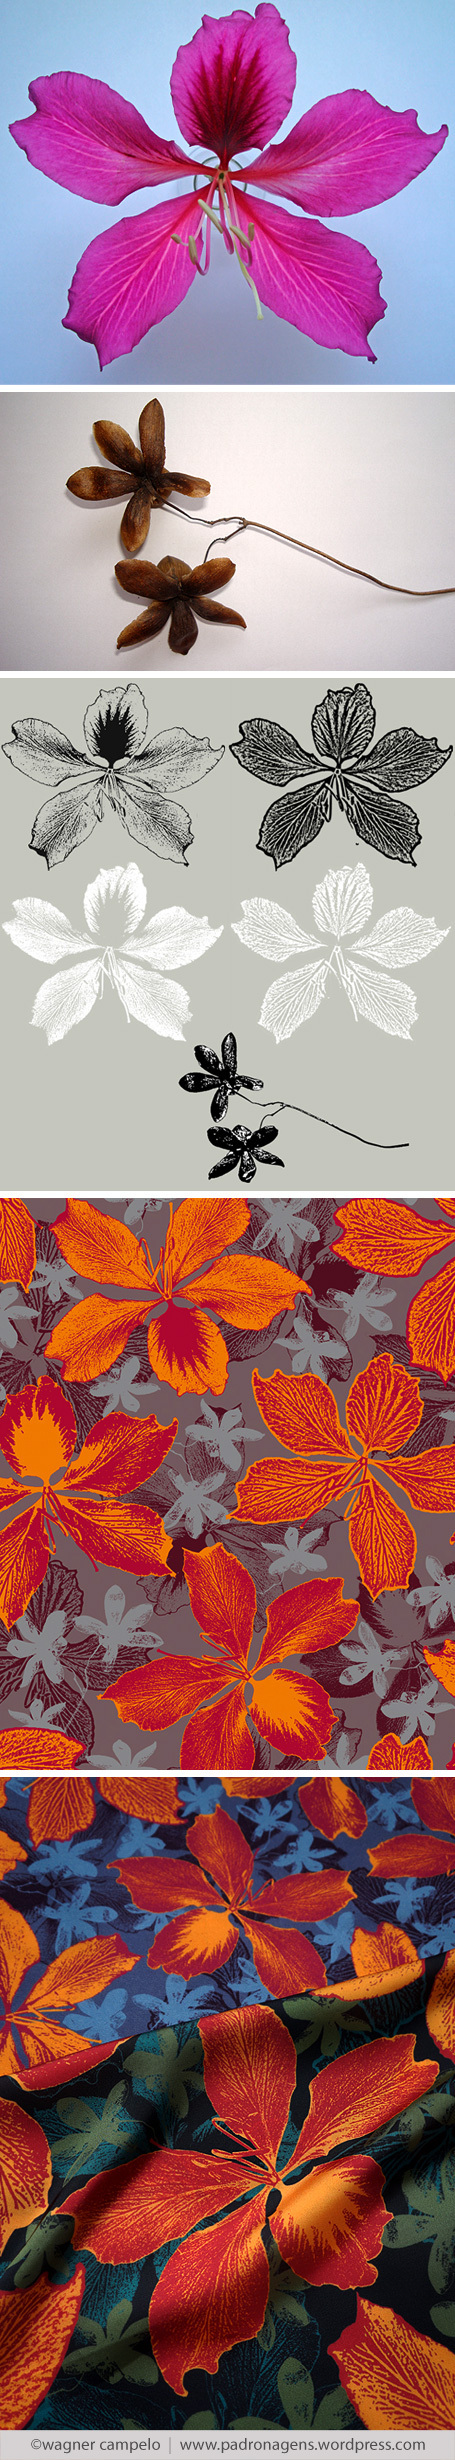 Creative process for prints from photos | Avatar Flowers pattern.